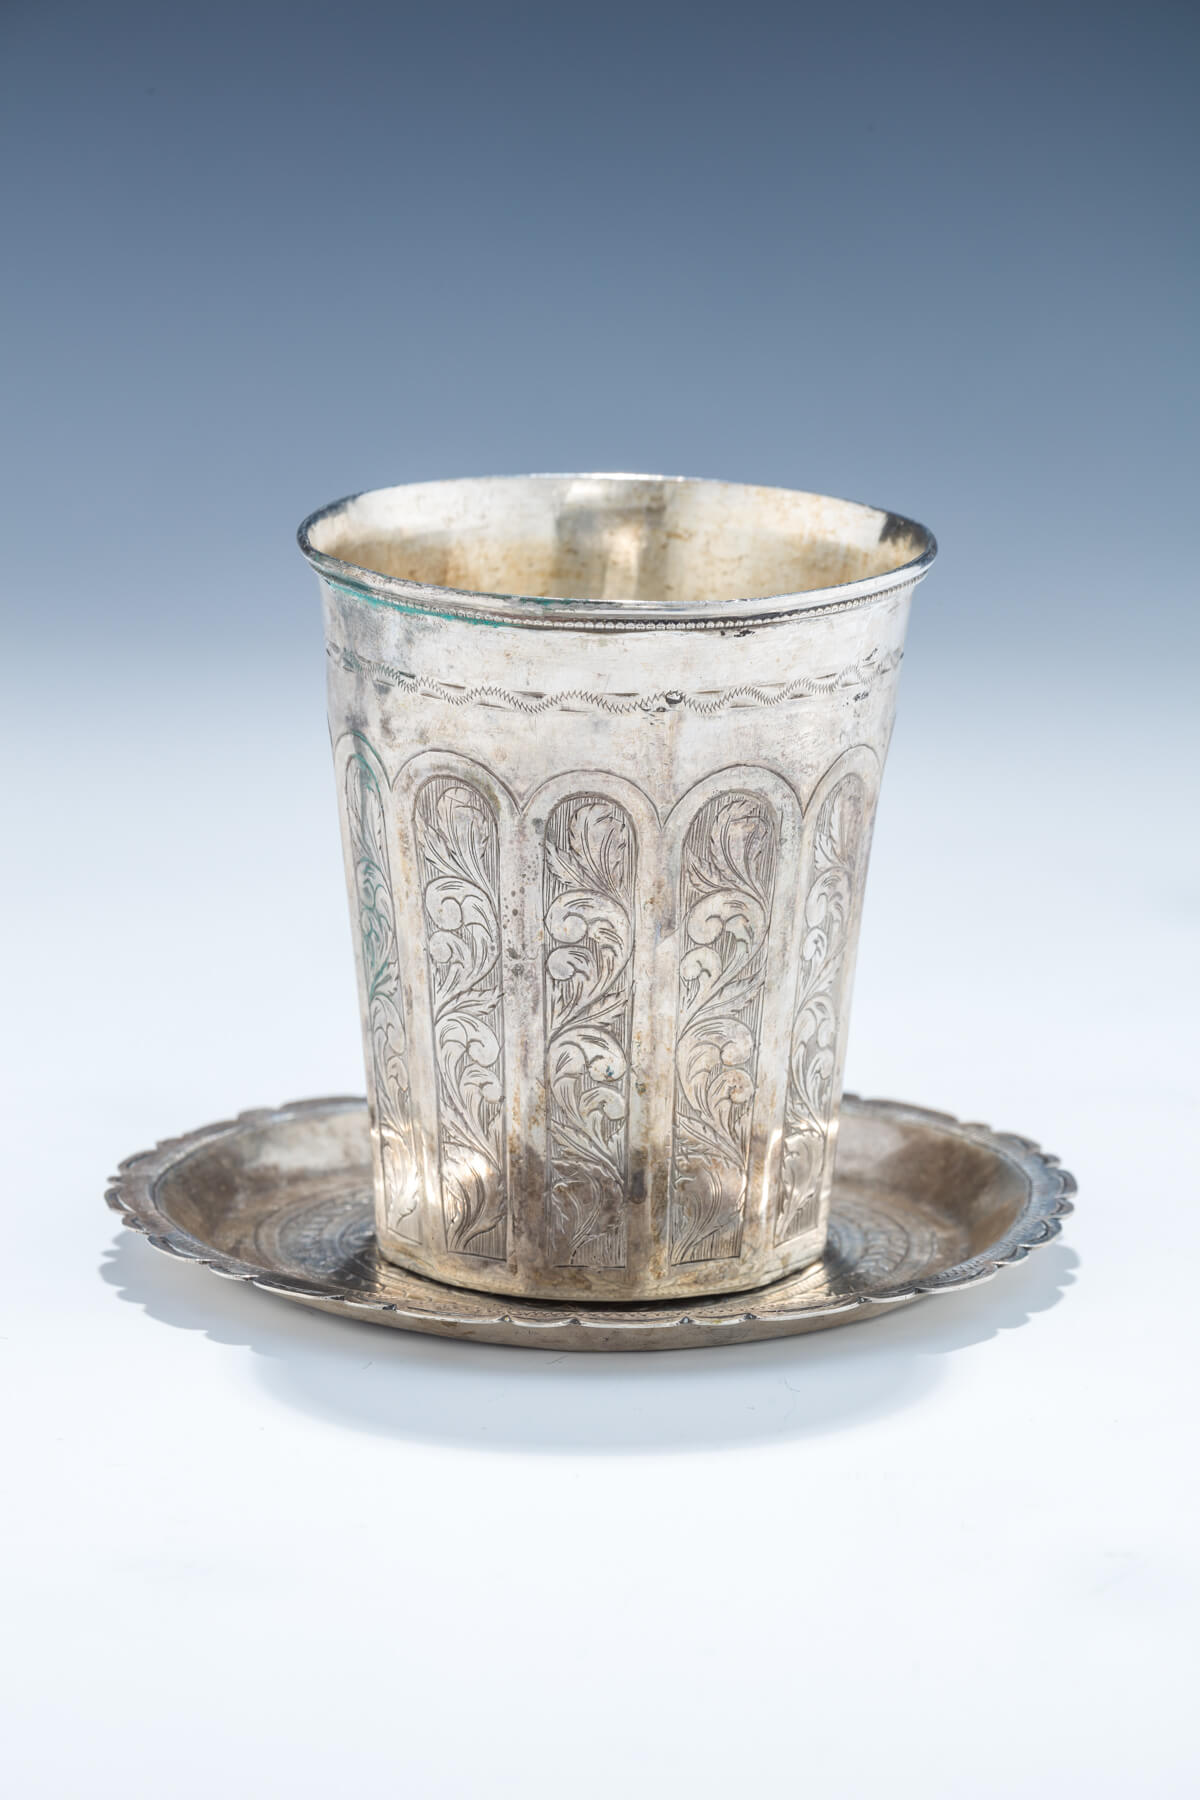 67. A Silver Kiddush Cup And Underplate